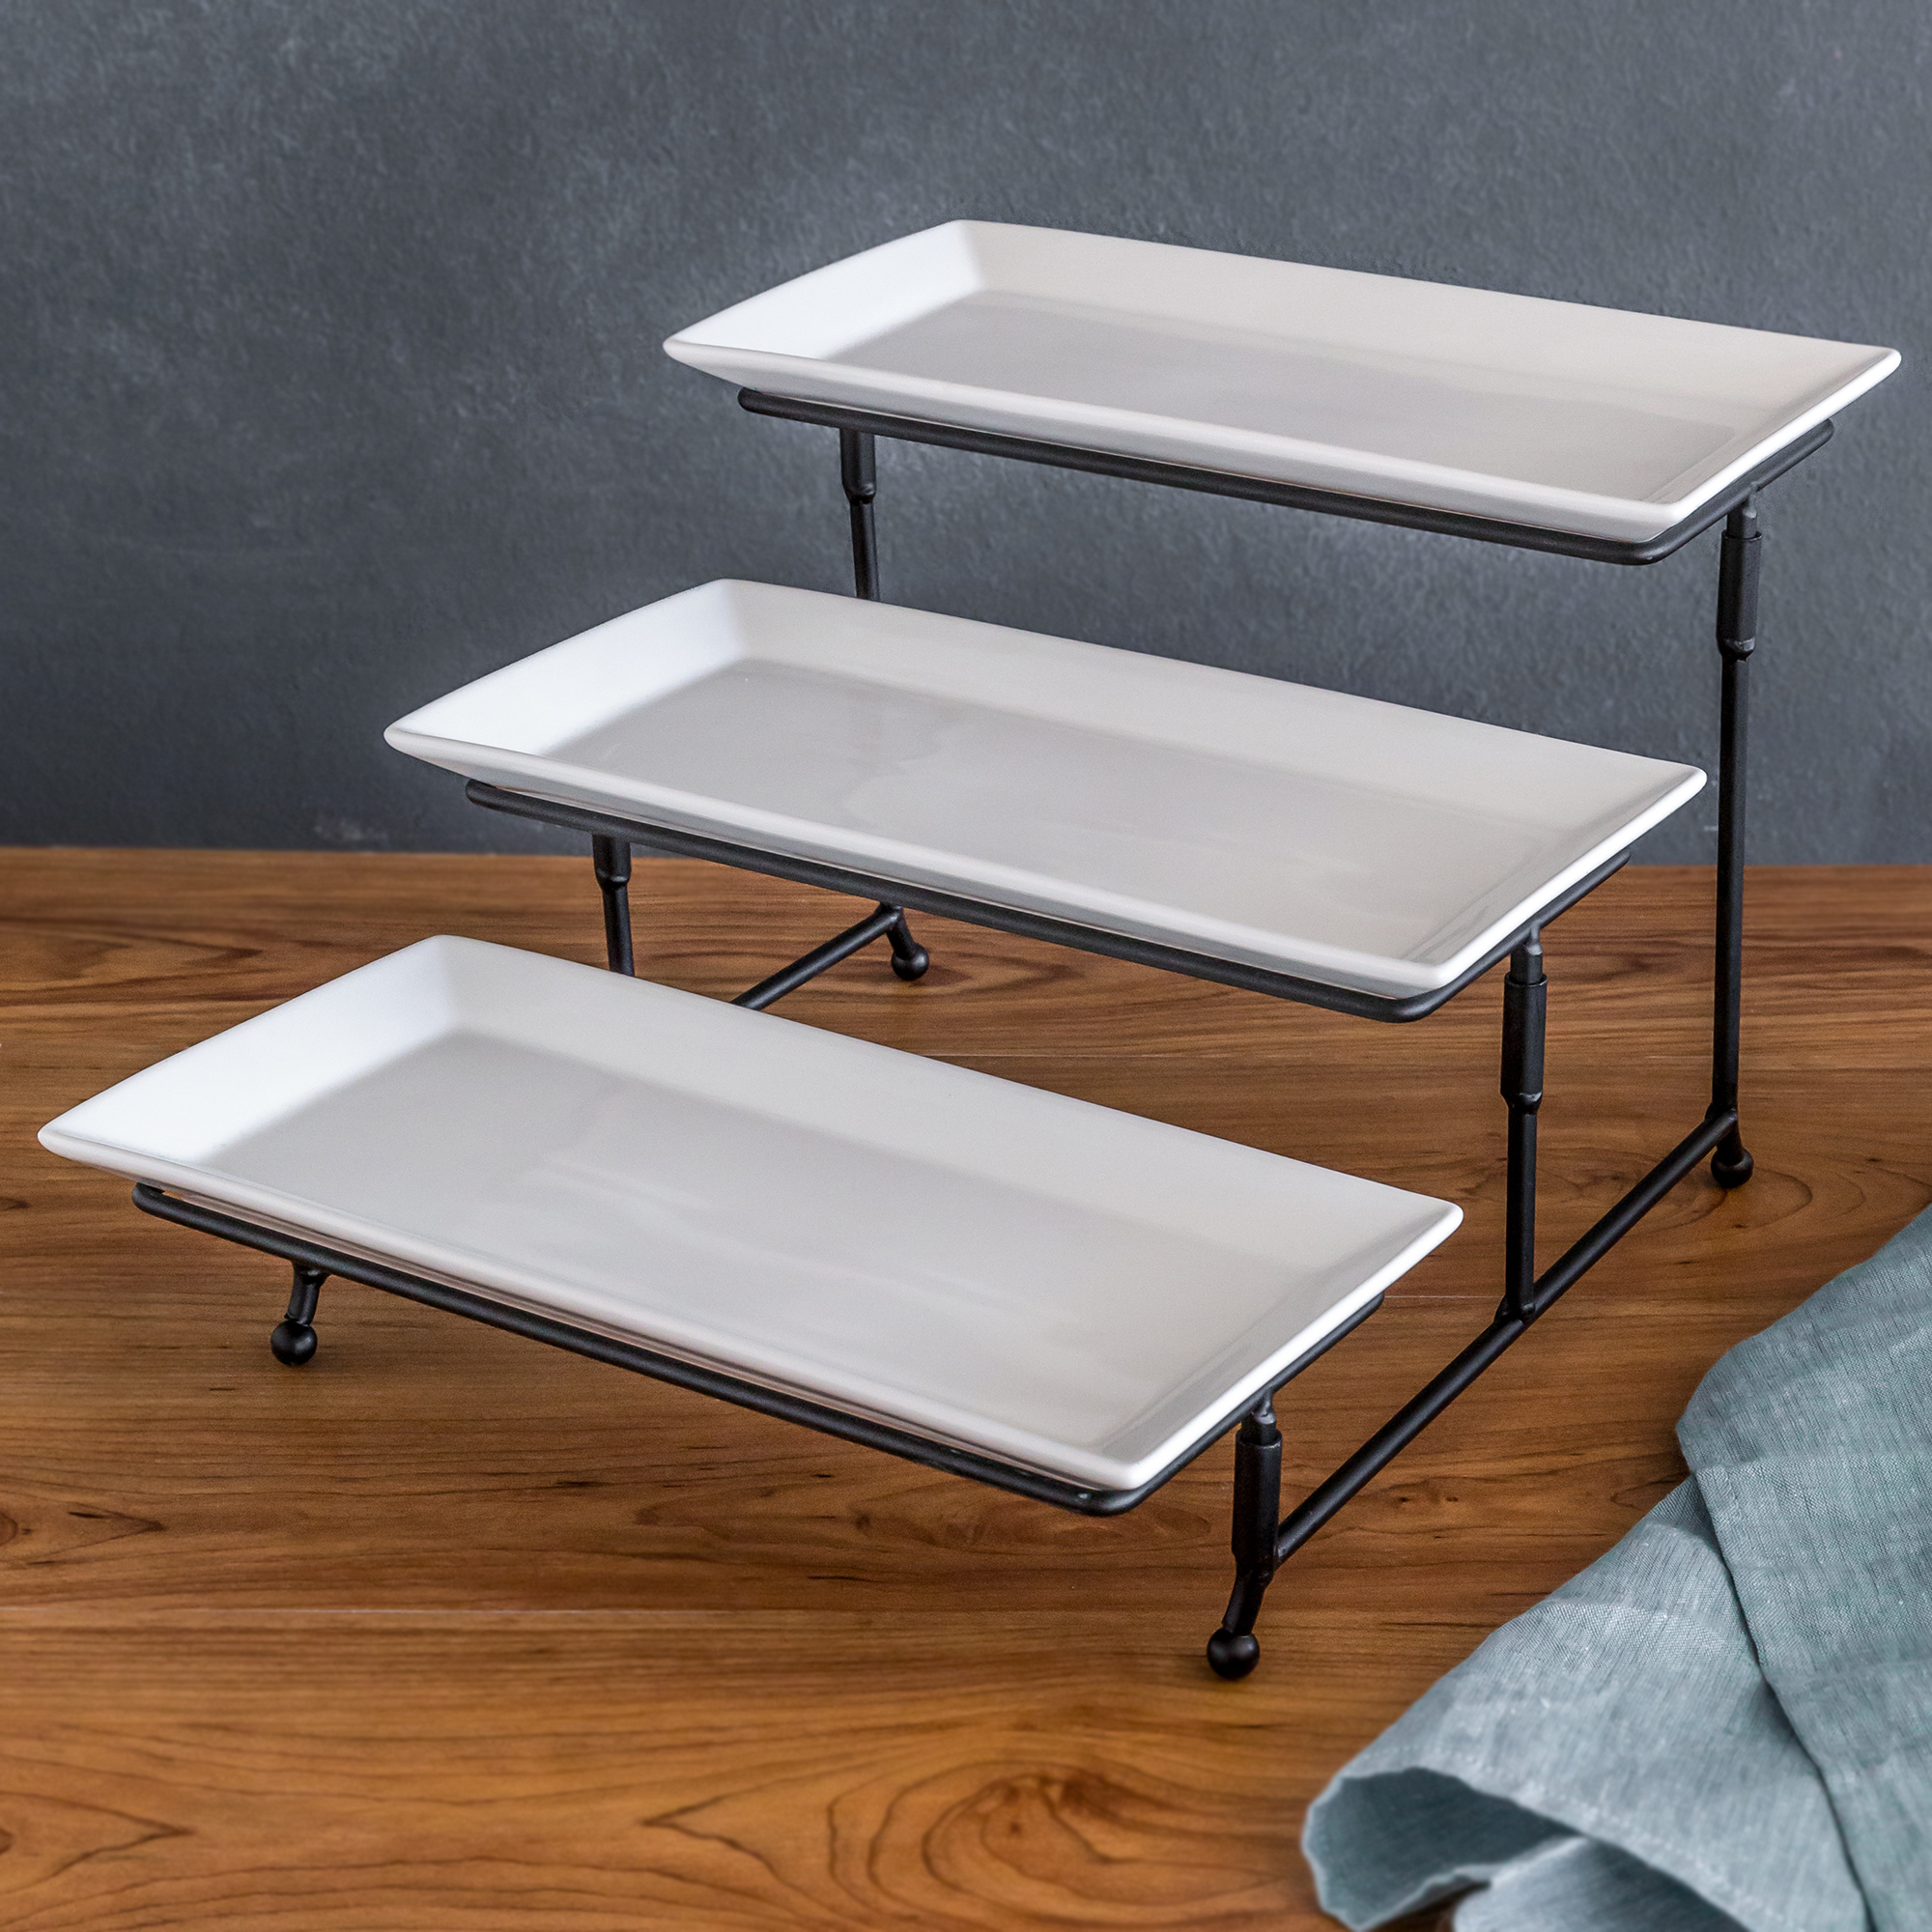 Better Homes and Gardens Porcelain 3-Tiered Rectangular Server w Metal Rack